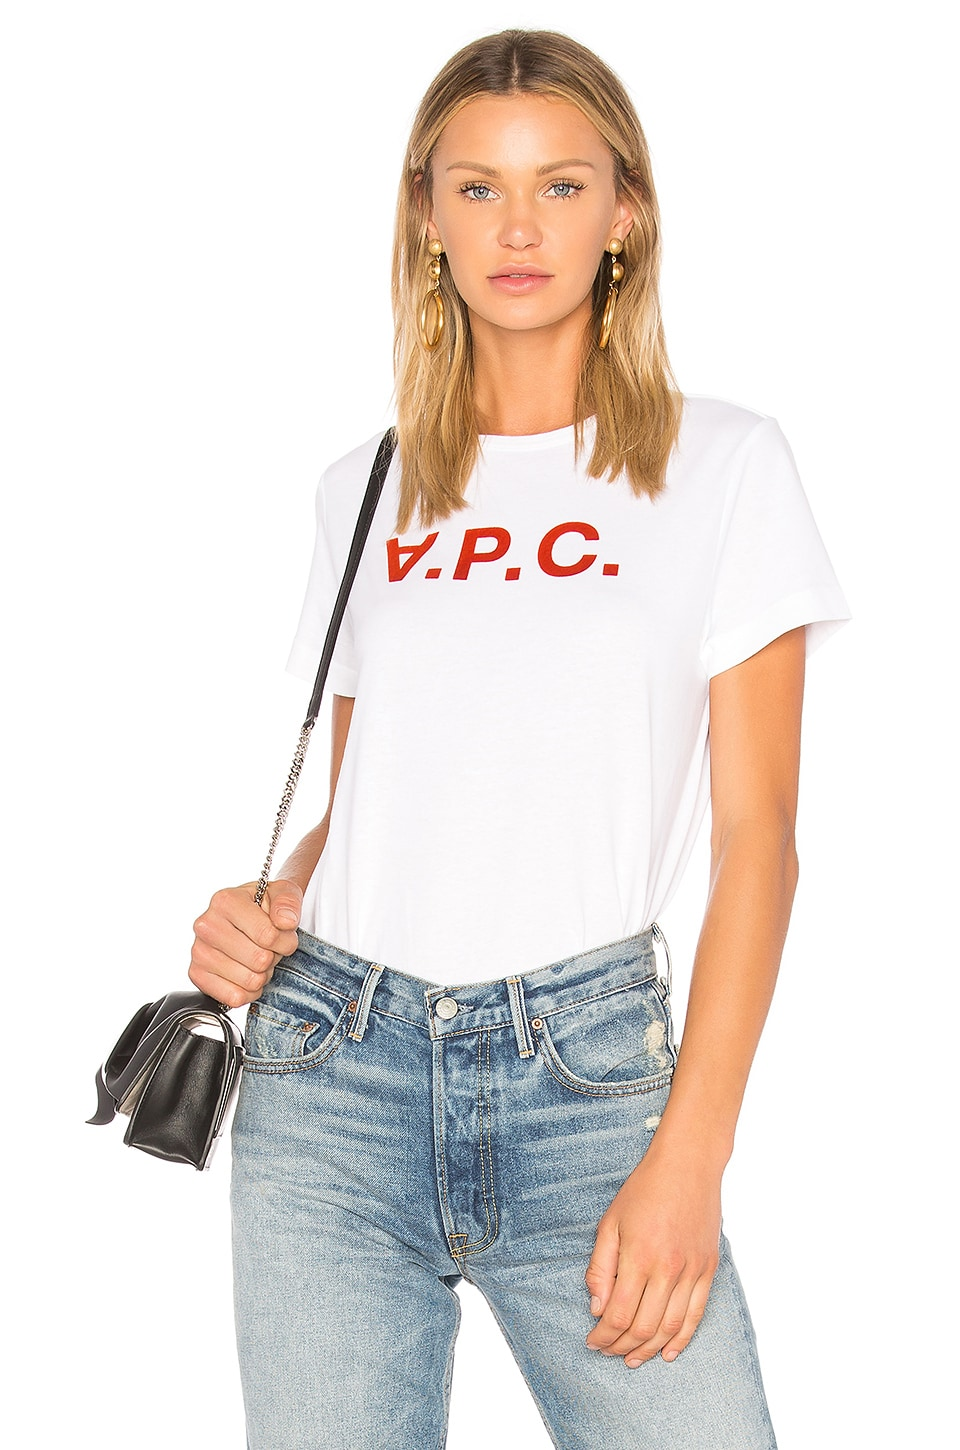 A.P.C. VPC Tee in Blanc